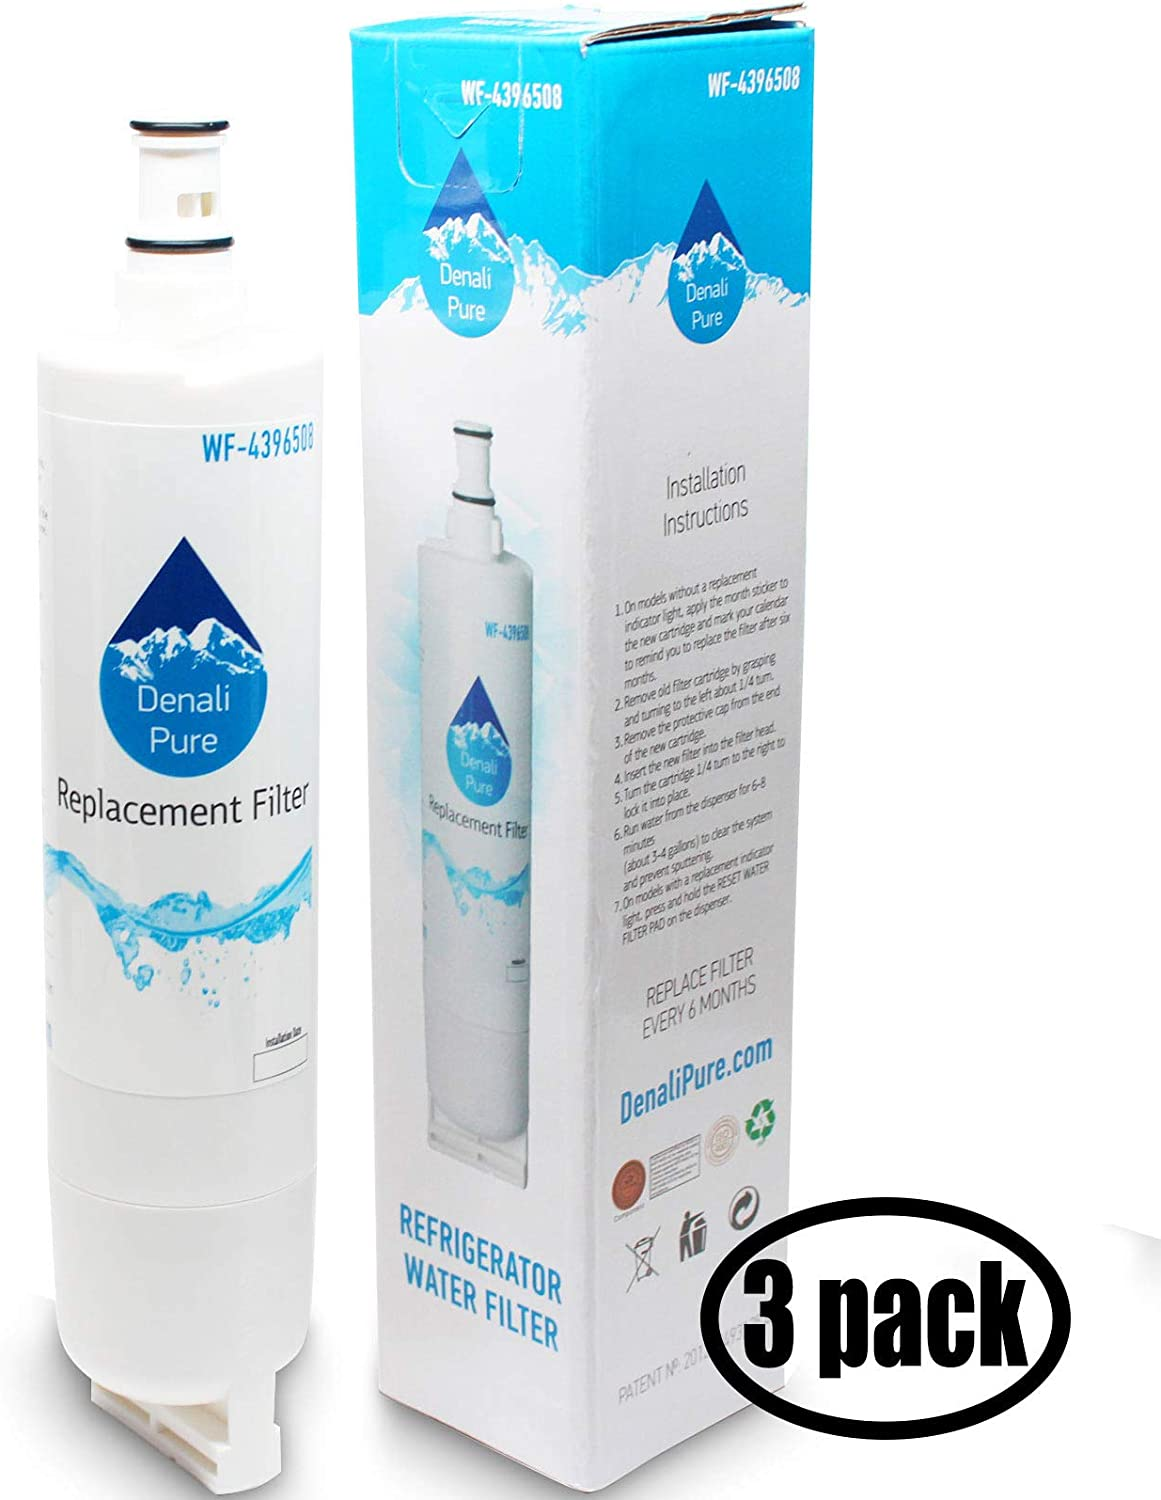 3-Pack Replacement for for Whirlpool 4396508P Refrigerator Water Filter - Compatible with with Whirlpool 4396508P Fridge Water Filter Cartridge